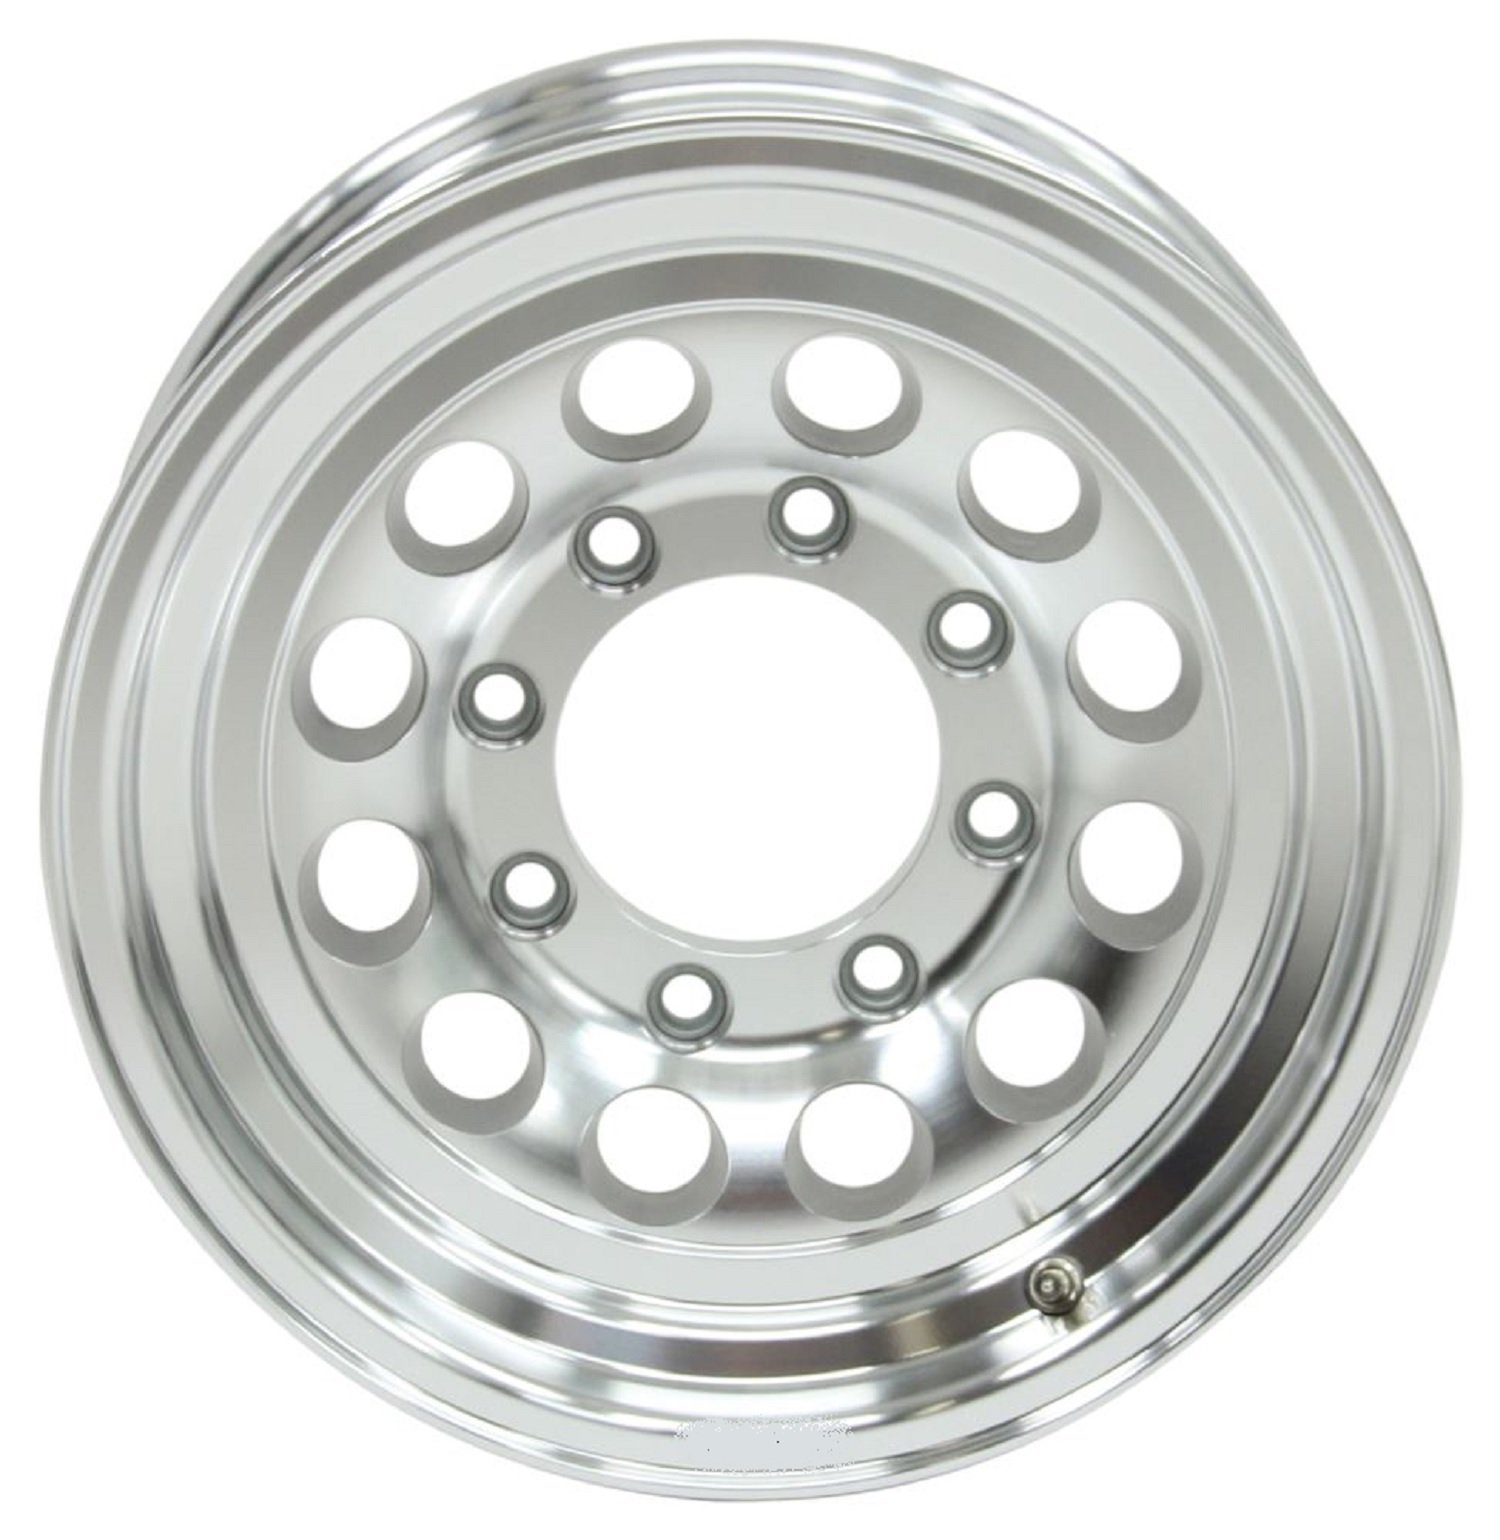 Aluminum Trailer Wheel Rim 16x6.5 Modular (8 Lug On 6.5'') 4.90'' Center Bore